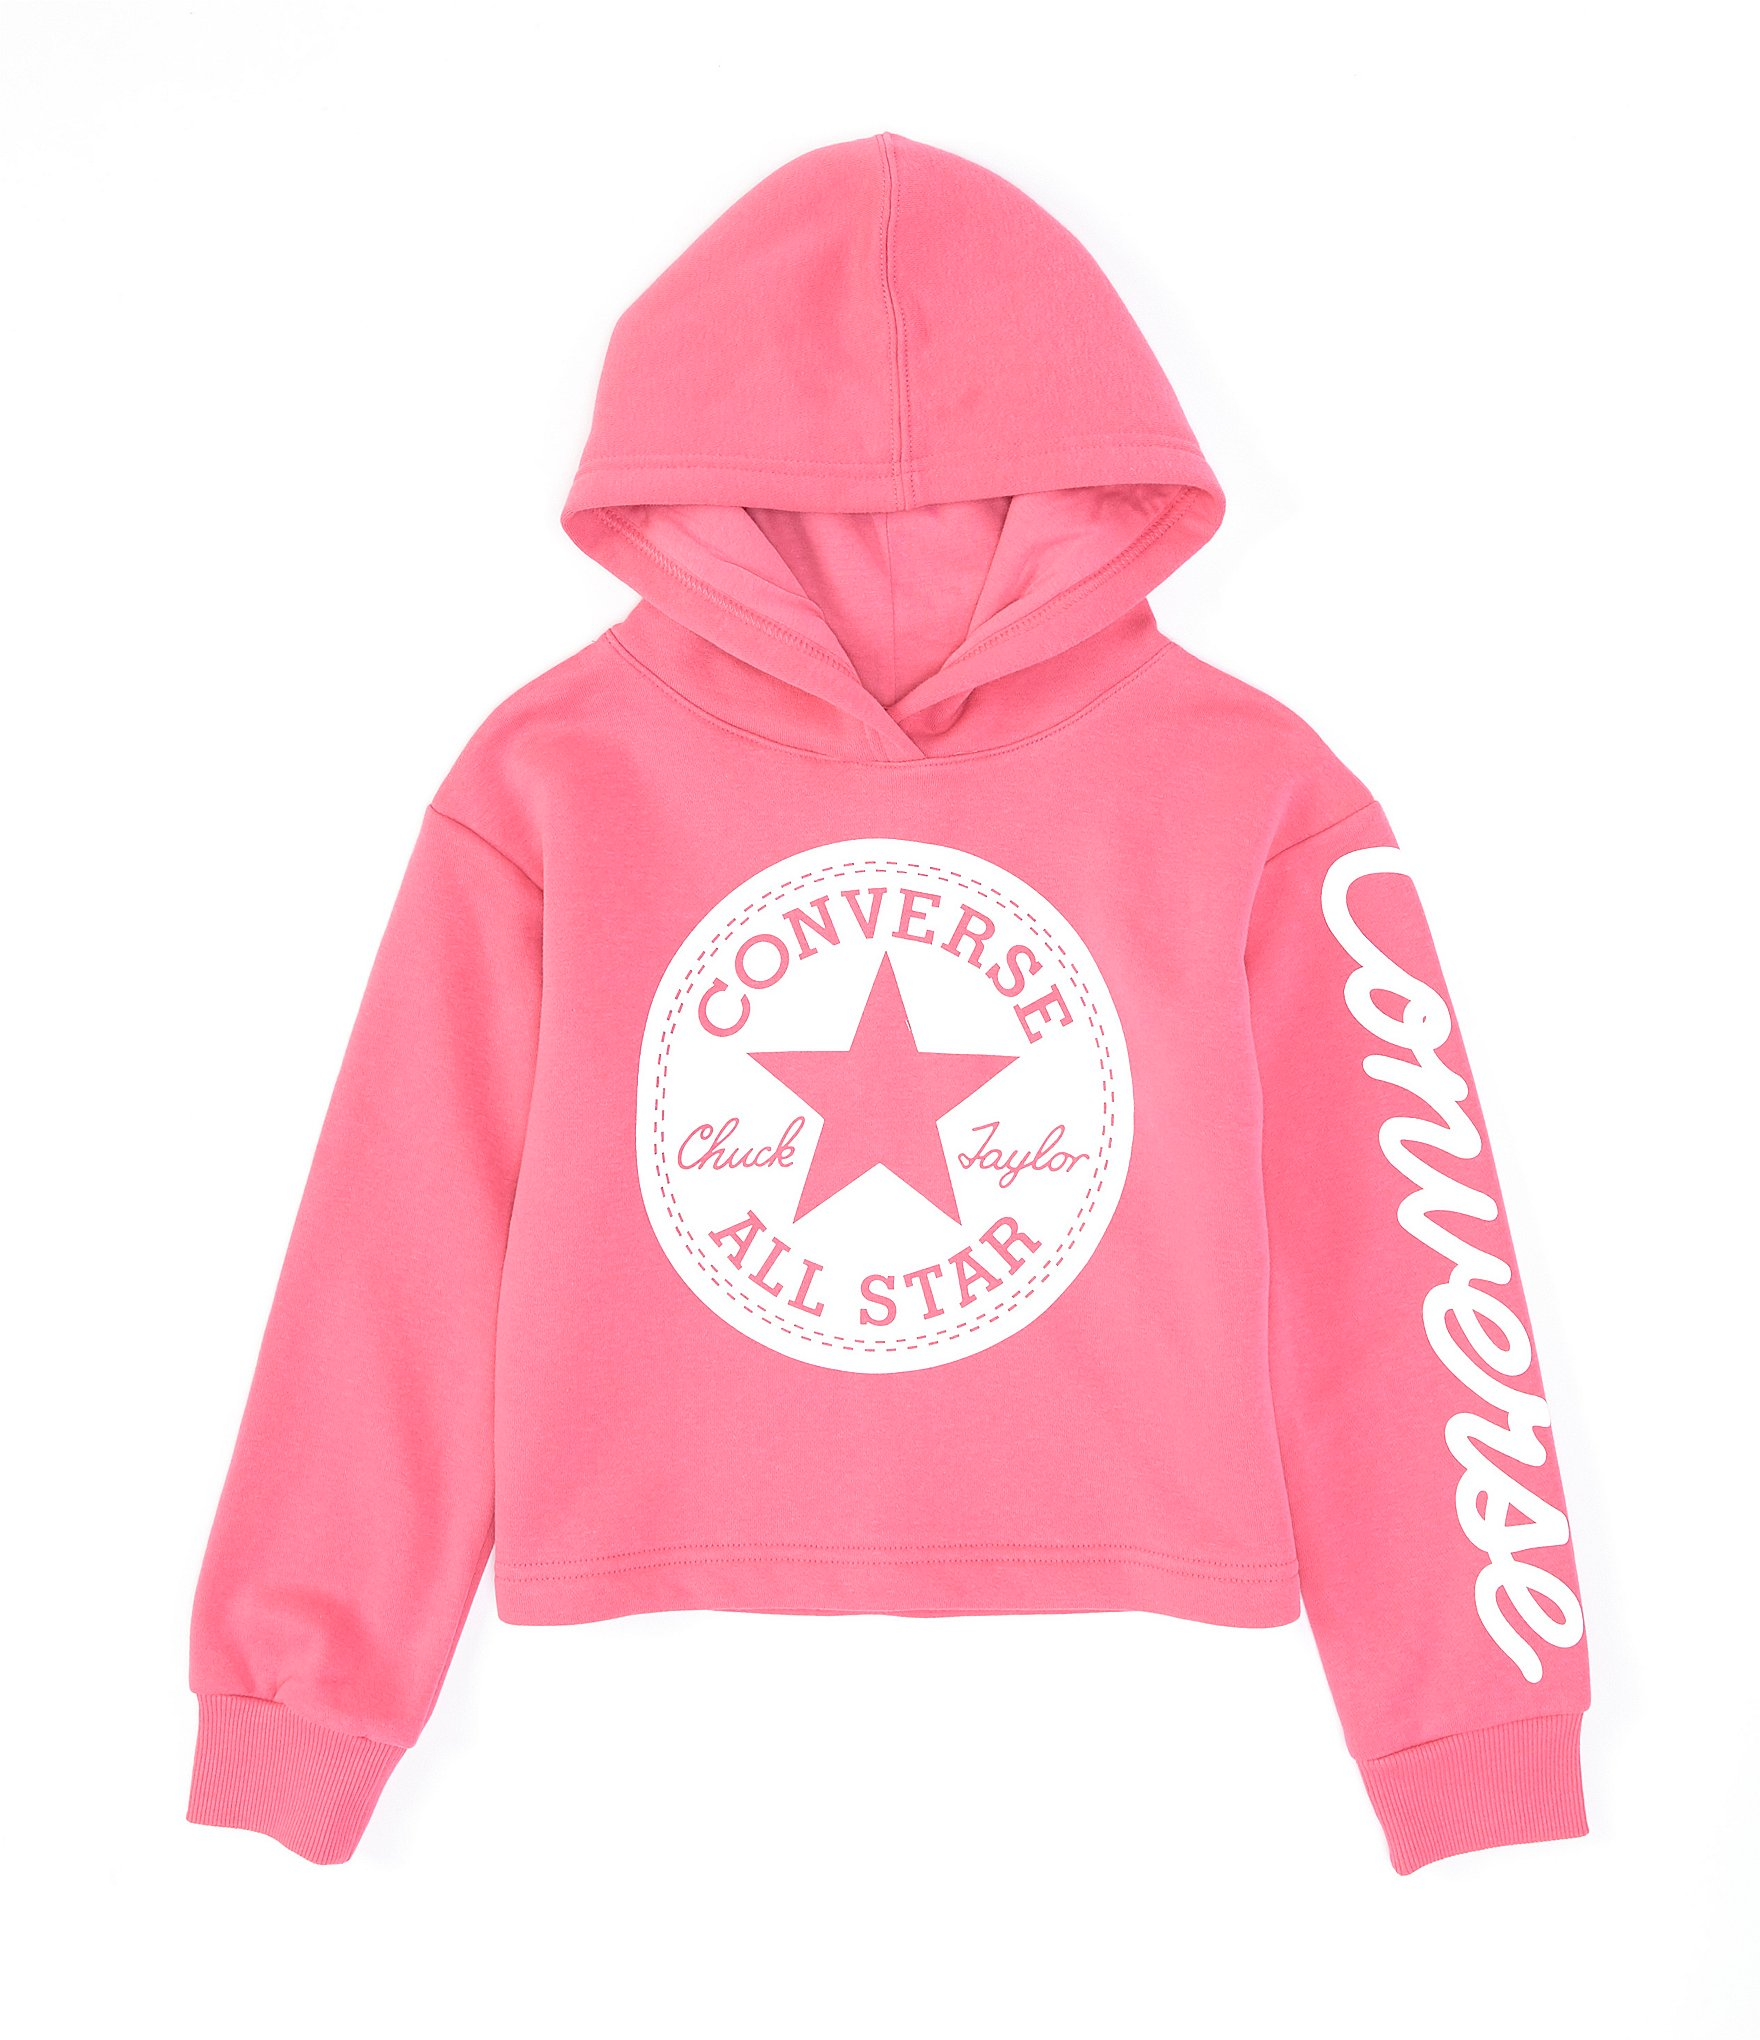 Converse Core Blocked W hoodie white blue pink